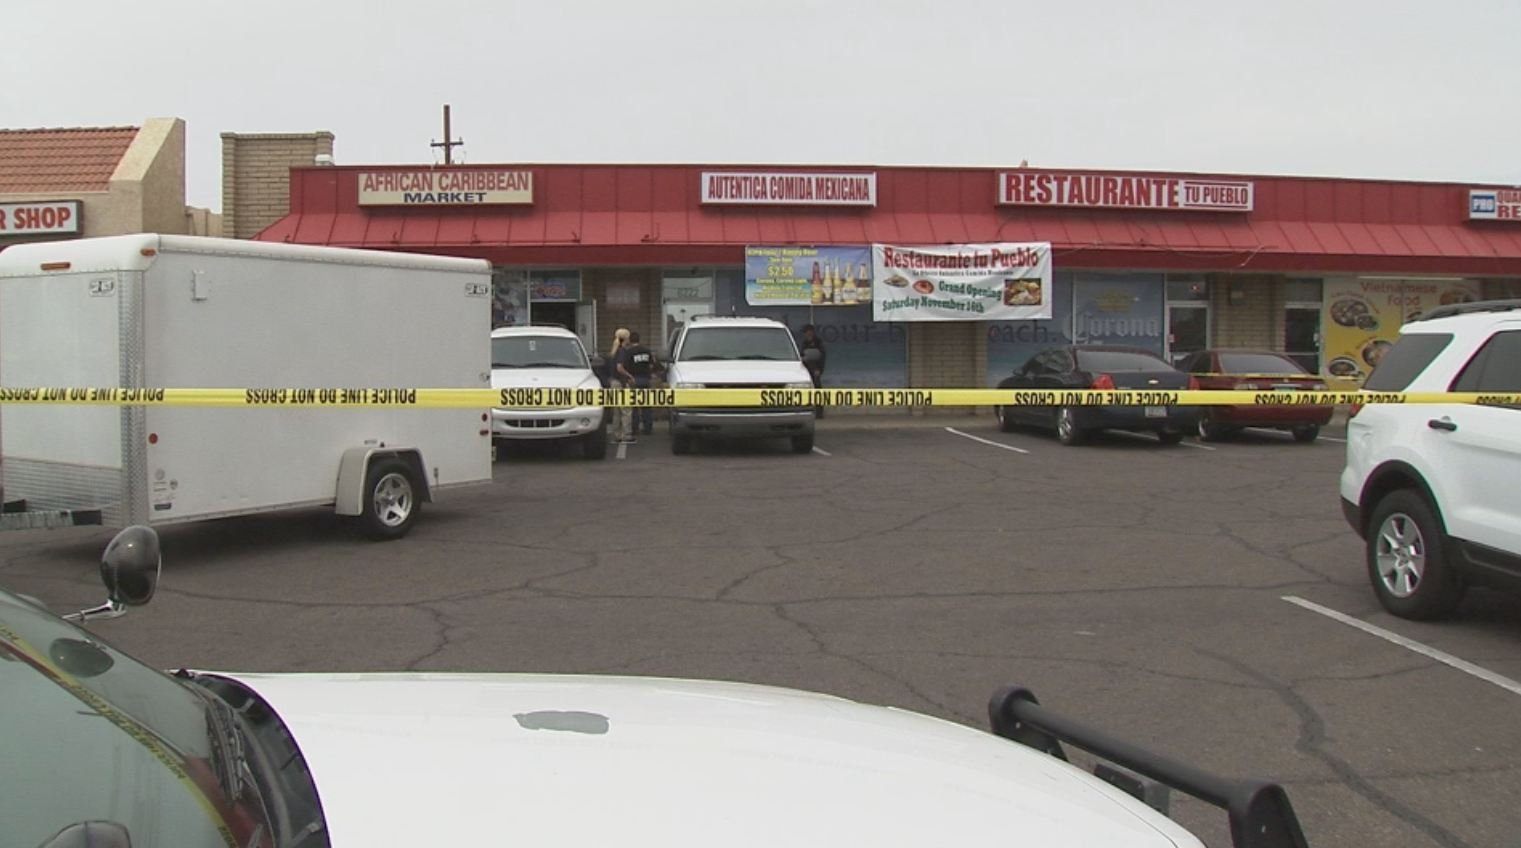 The Glendale Police SWAT team rushed into African Caribbean Market and arrested a husband and wife accused of running a multimillion-dollar fraudulent food stamp operation, the largest in Arizona history. (Source: CBS 5 News)